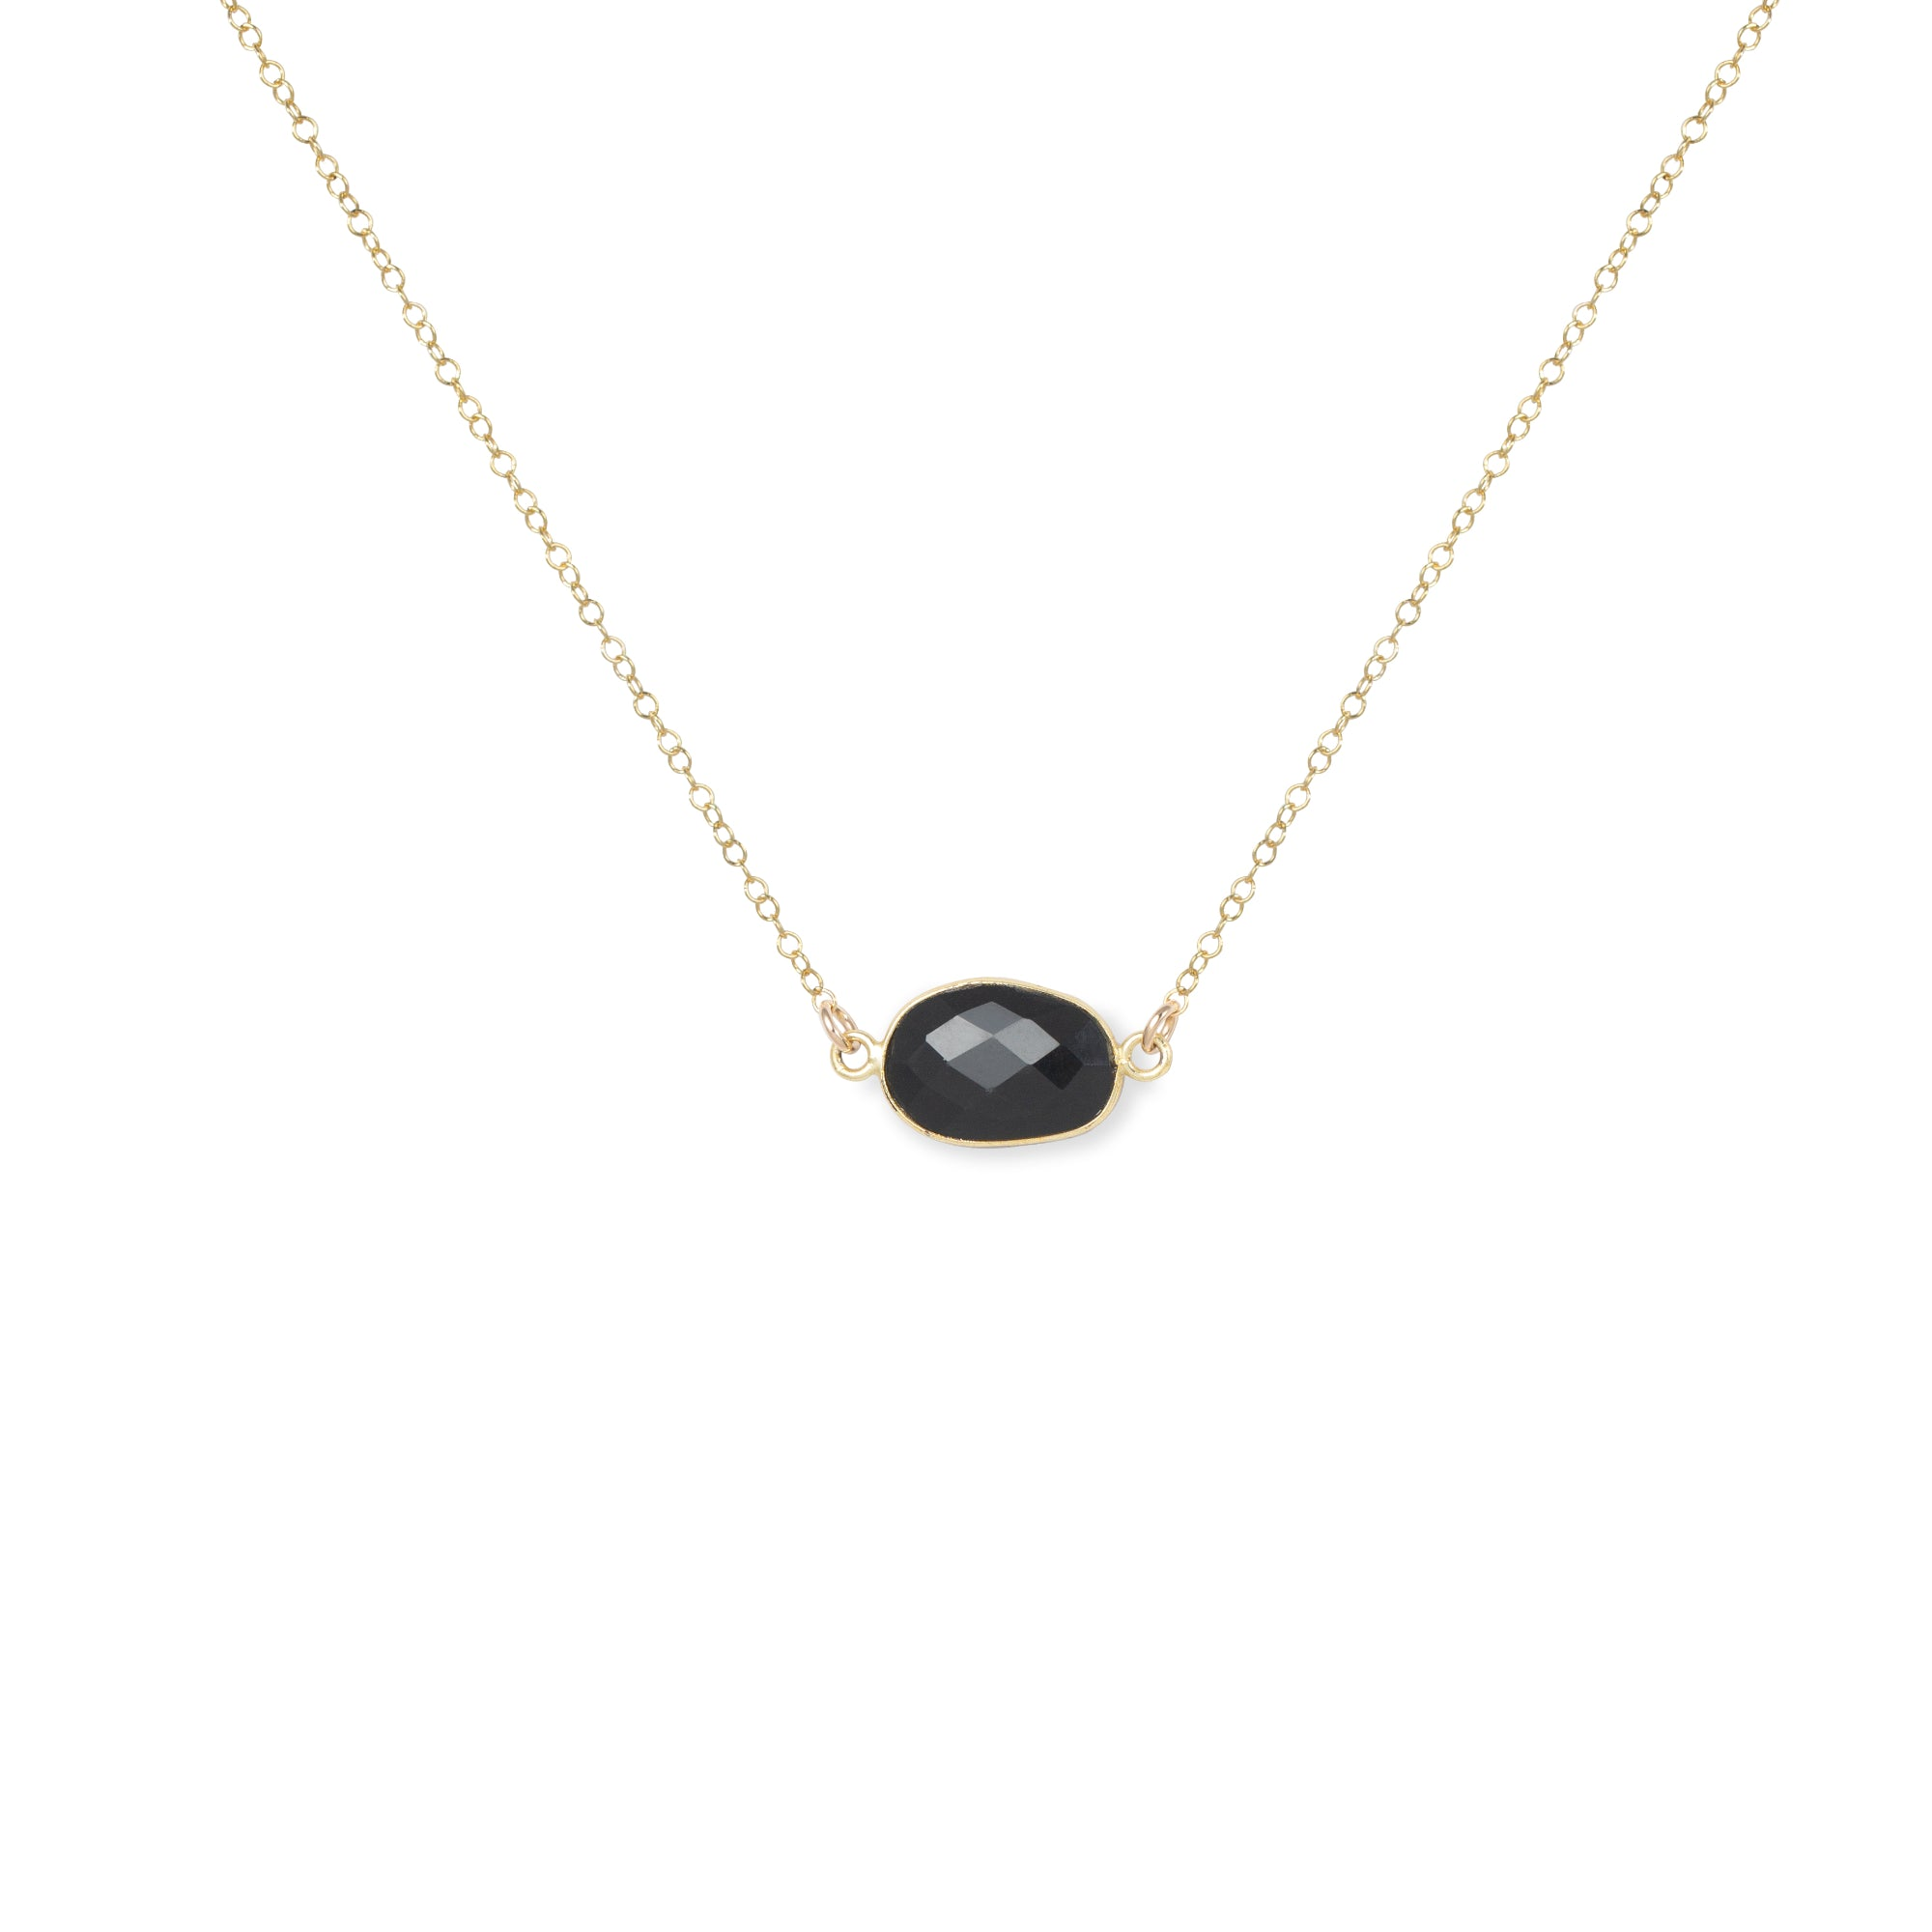 Close-up of Oval-shaped Spinel and Gold Necklace 'I Am Badass' on White Background Product Photo by Asha Blooms